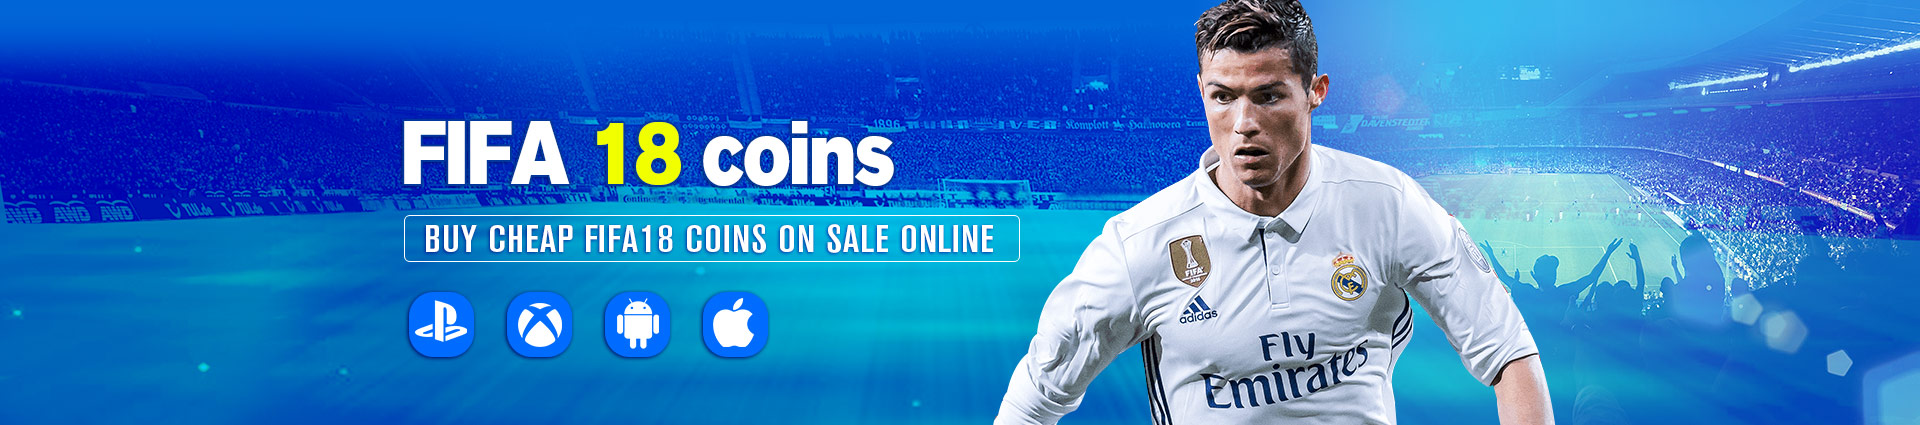 fifa 15 coins online